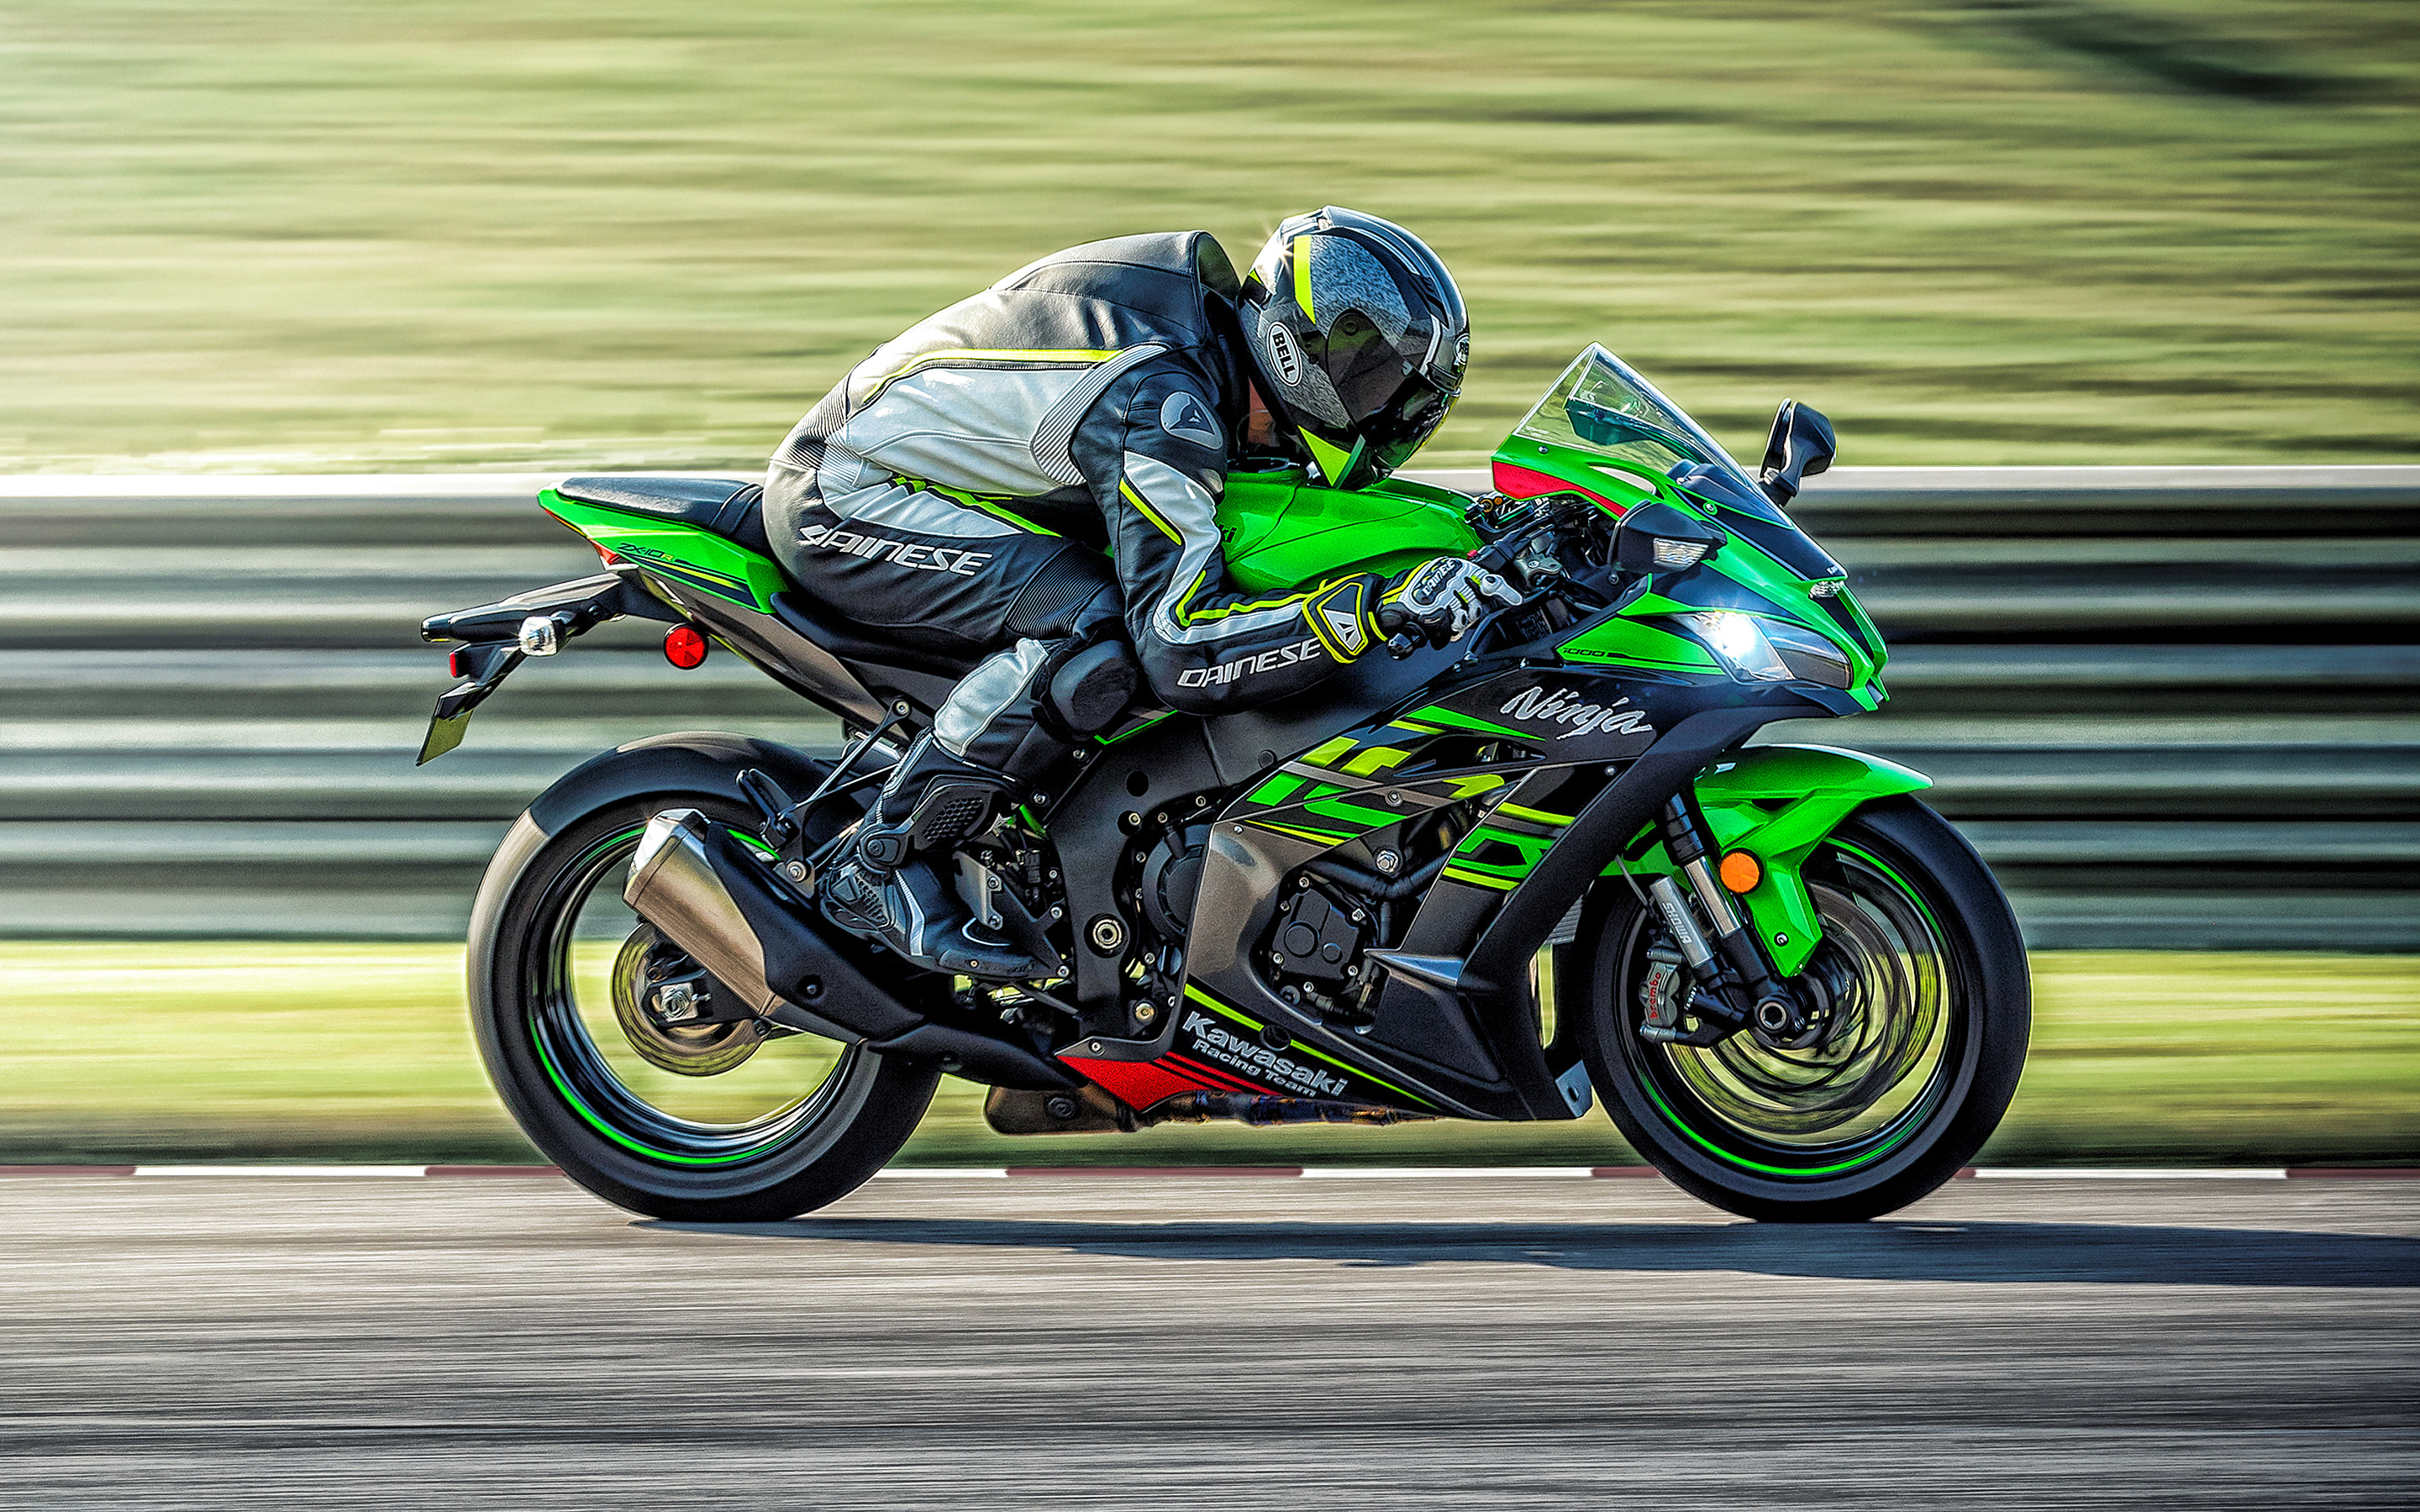 2019, Kawasaki Ninja ZX-10R, side view, black-green ZX-10R, sports bike, motorcycle racing, japanese motorcycles, Kawasaki